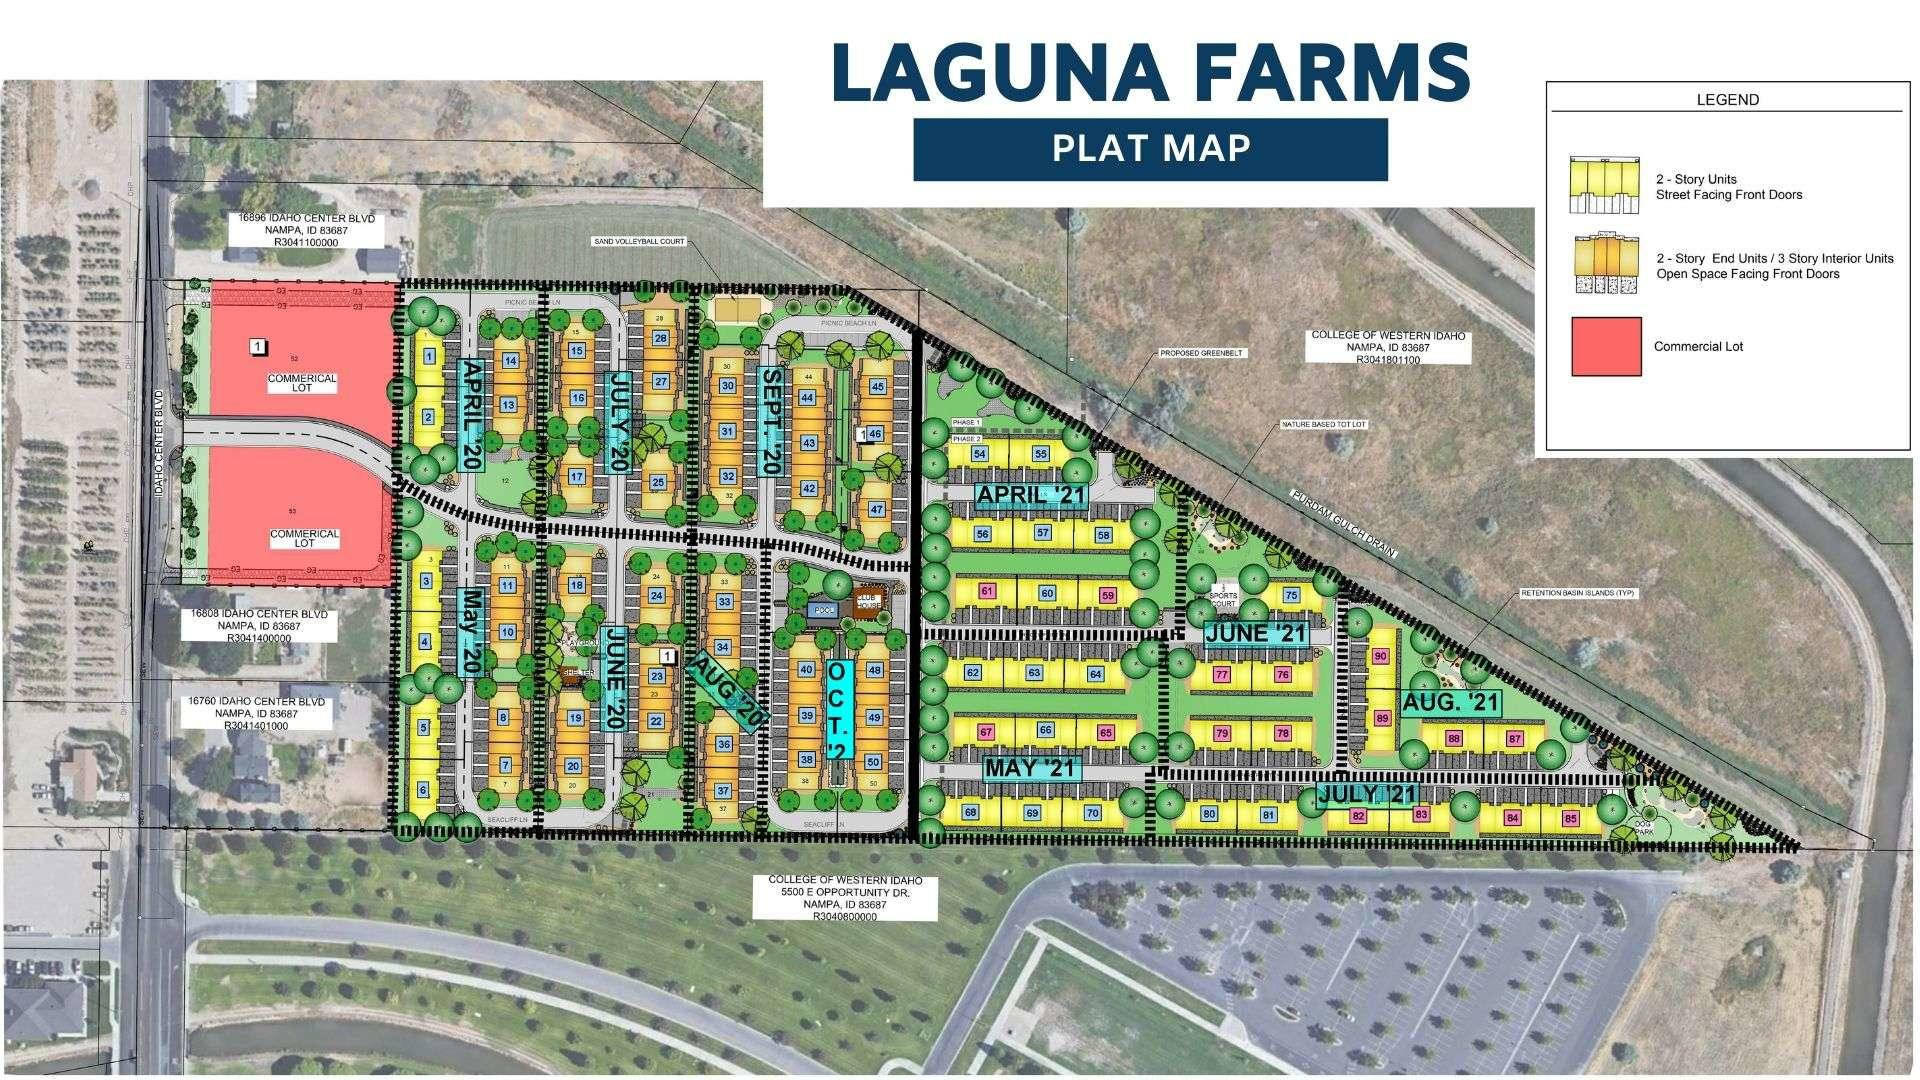 Plat Map for the Laguna Farms FIG Development